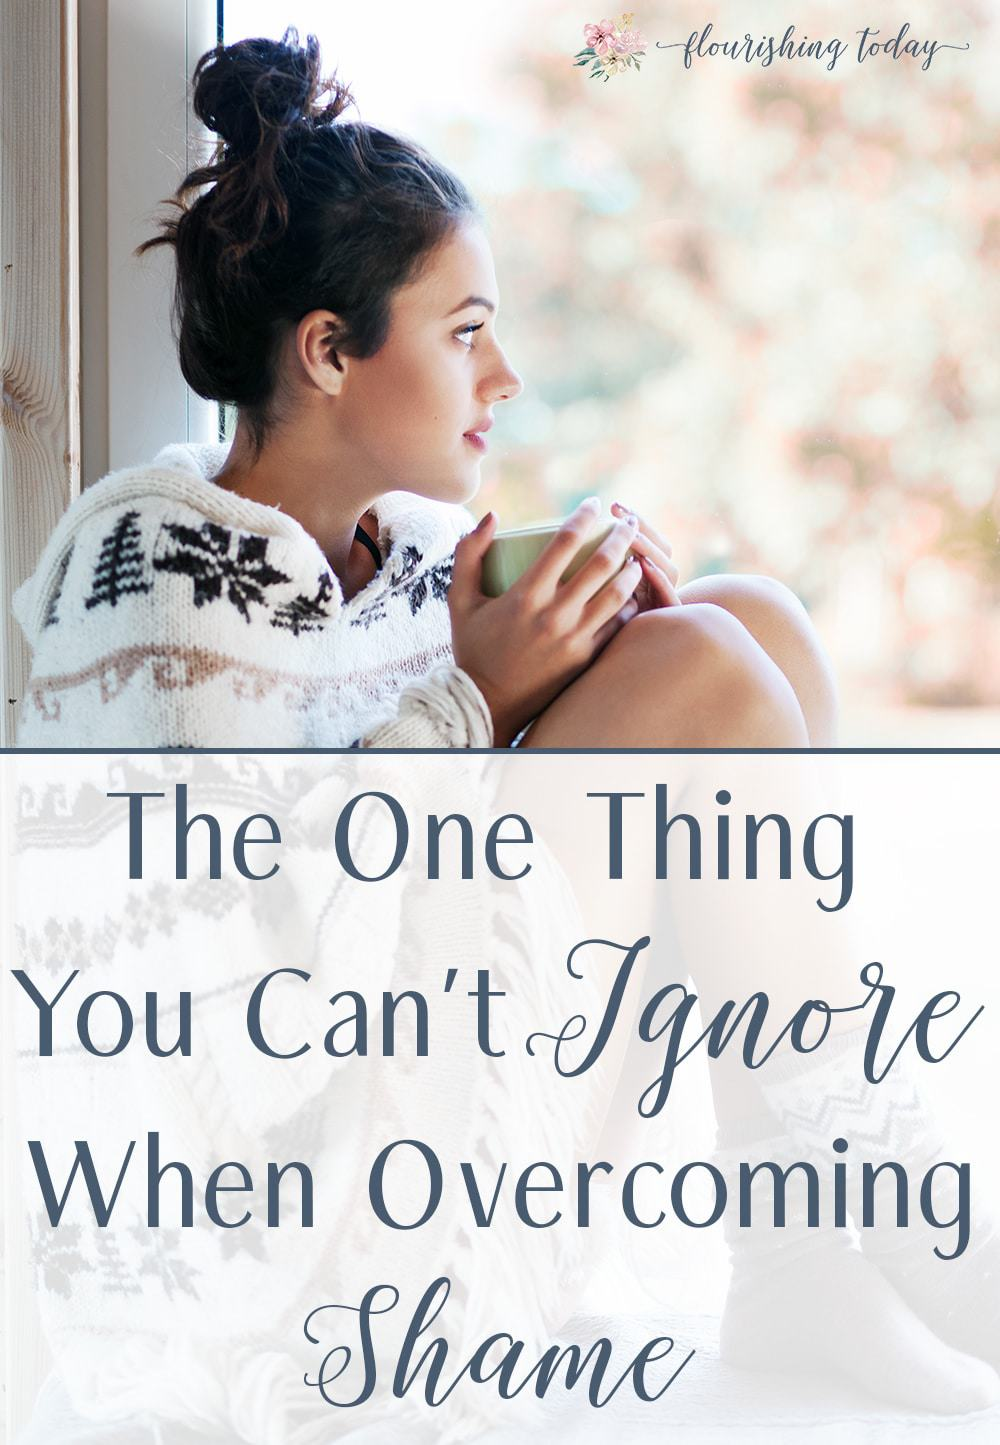 Is shame keeping you from embracing the beautiful life God has for you? Here are a few things you can do to gain victory when overcoming shame of your past. #overcomingshame #shame #victory #overcome